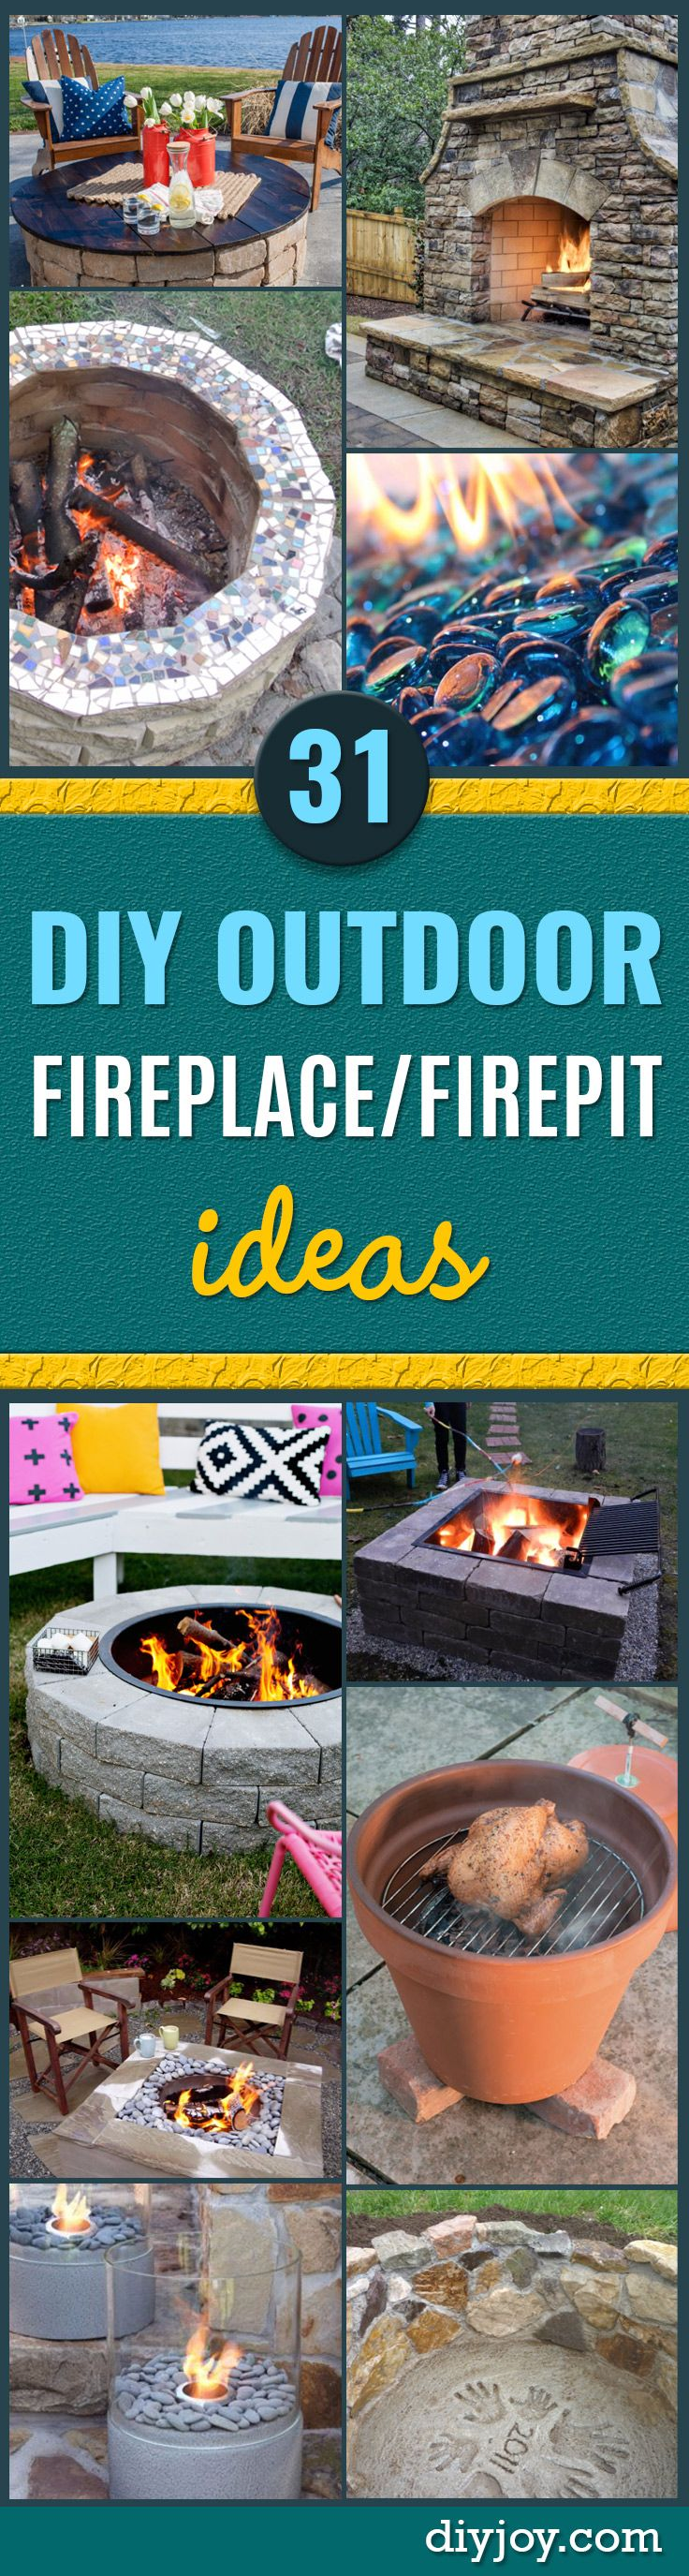 Diy Projects For Men Best 25 Do It Yourself Terrasse Ideas On Pinterest Do It